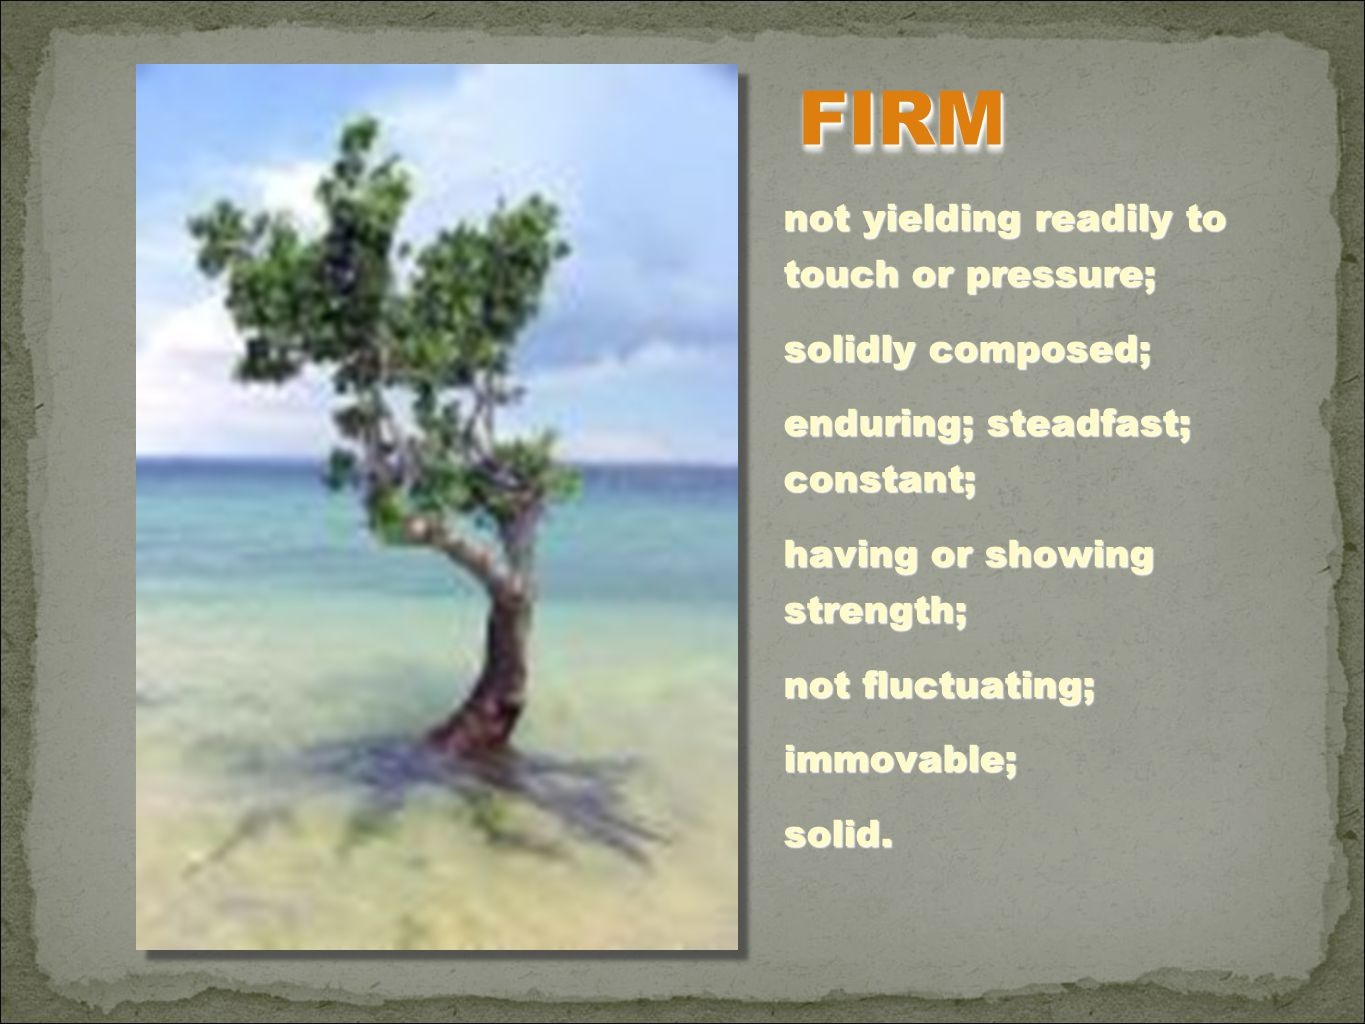 FIRM not yielding readily to touch or pressure; solidly composed;